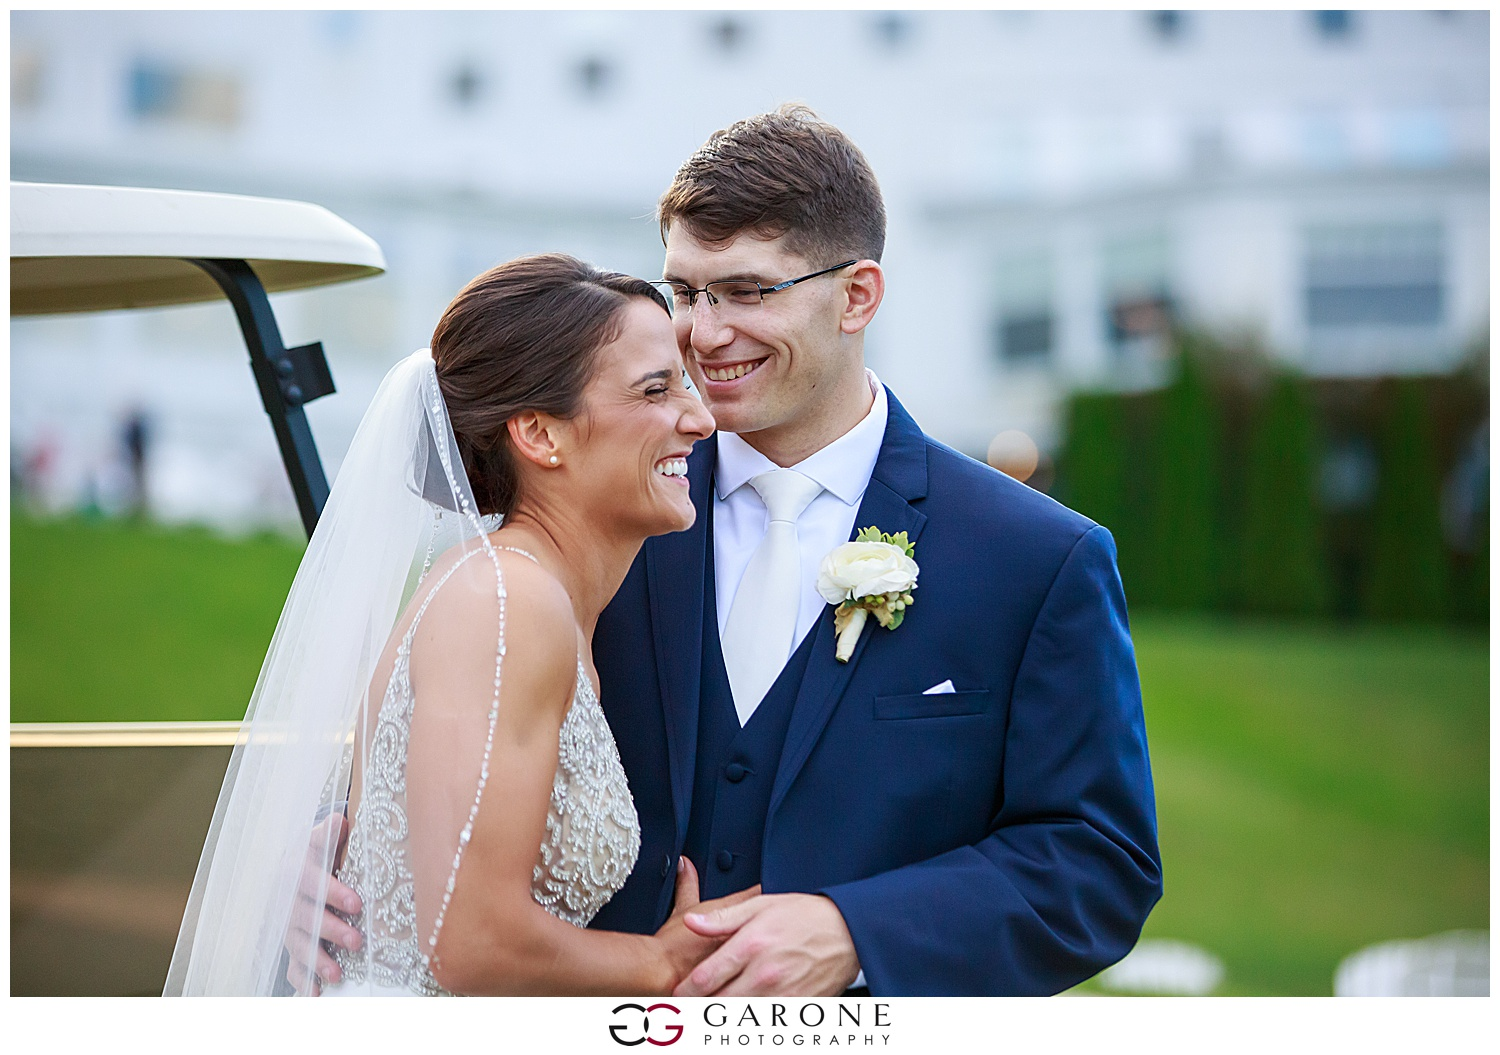 Omni_Mount_Washington_hotel_Wedding_White_Mountain_Wedding_Garone_Photography_0037.jpg